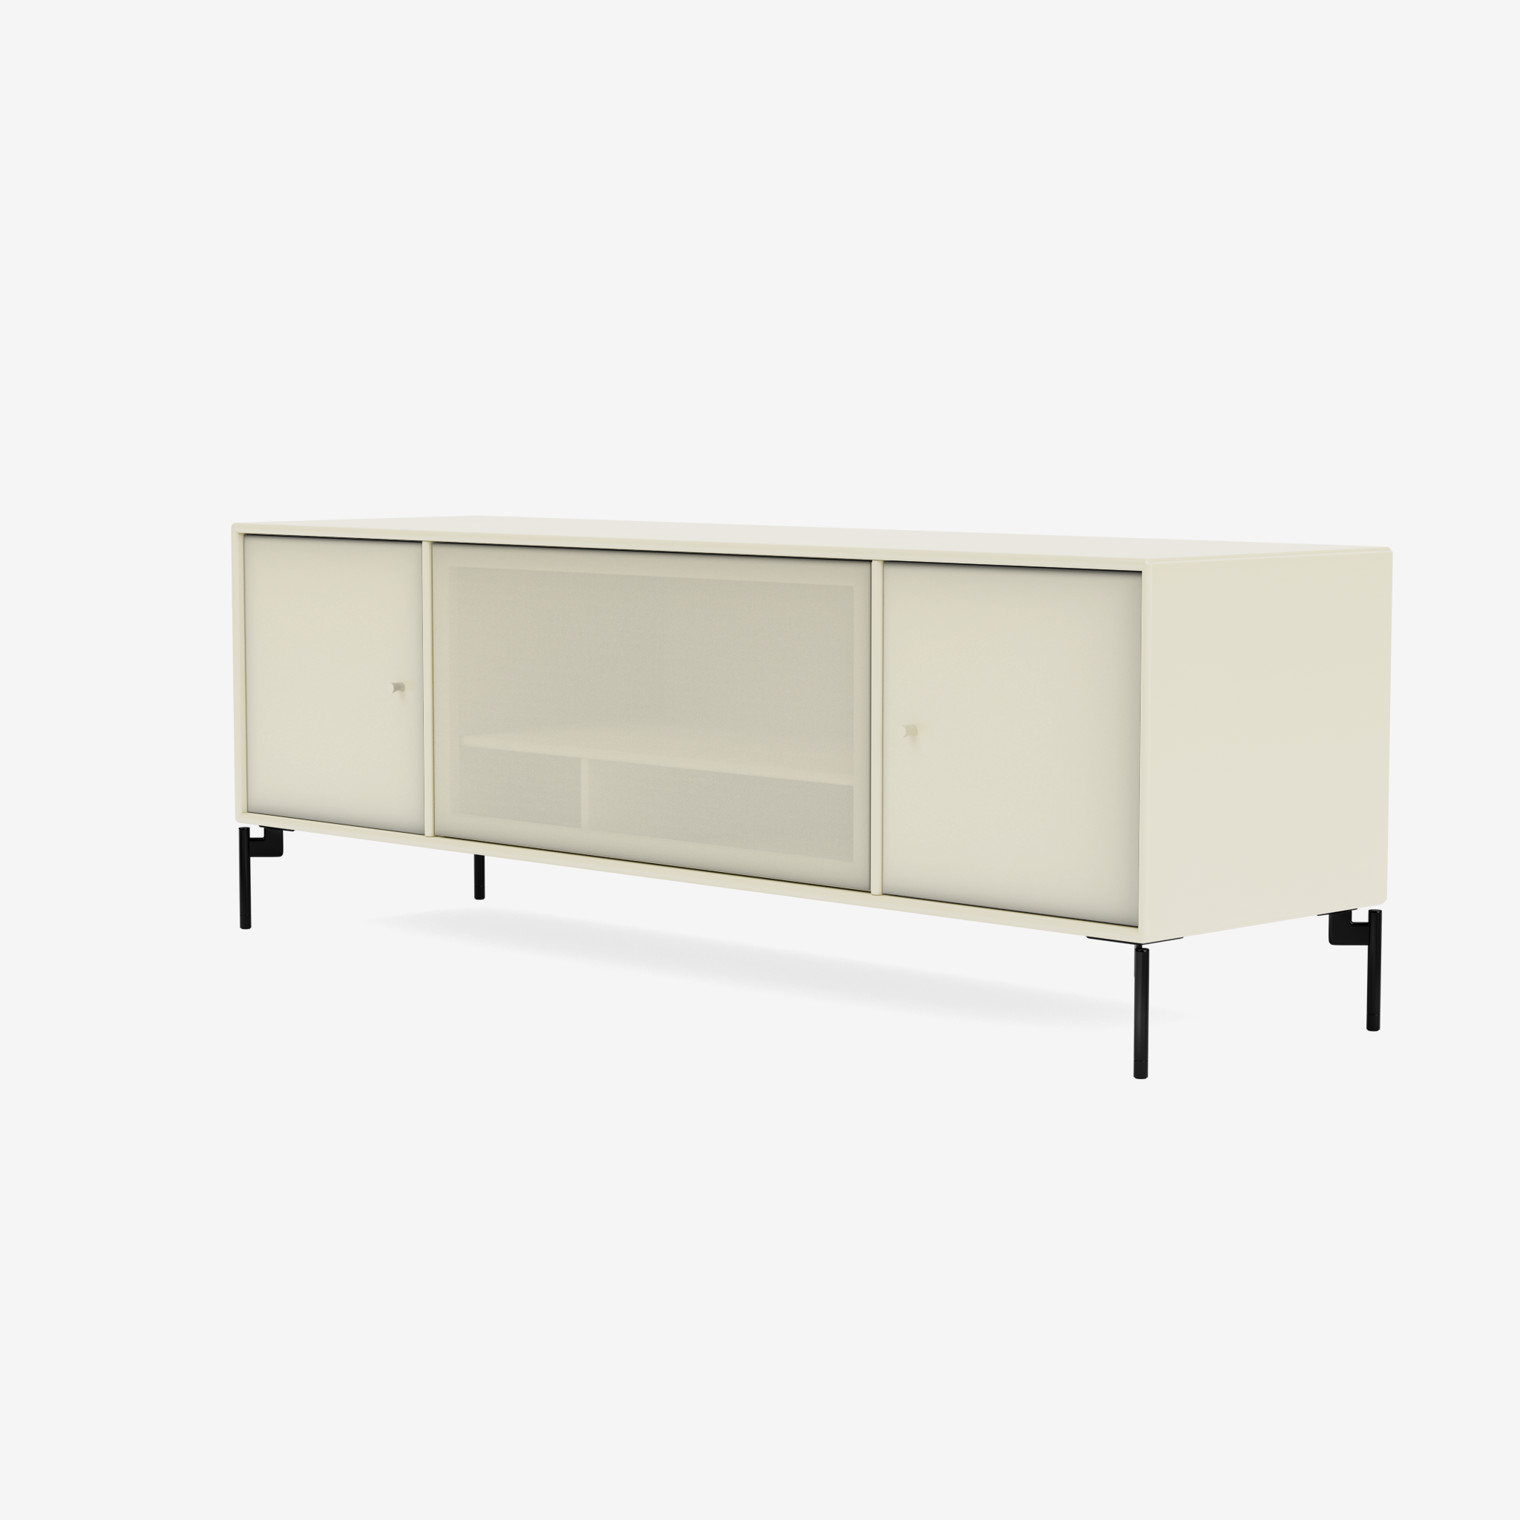 OCTAVE III TV-table